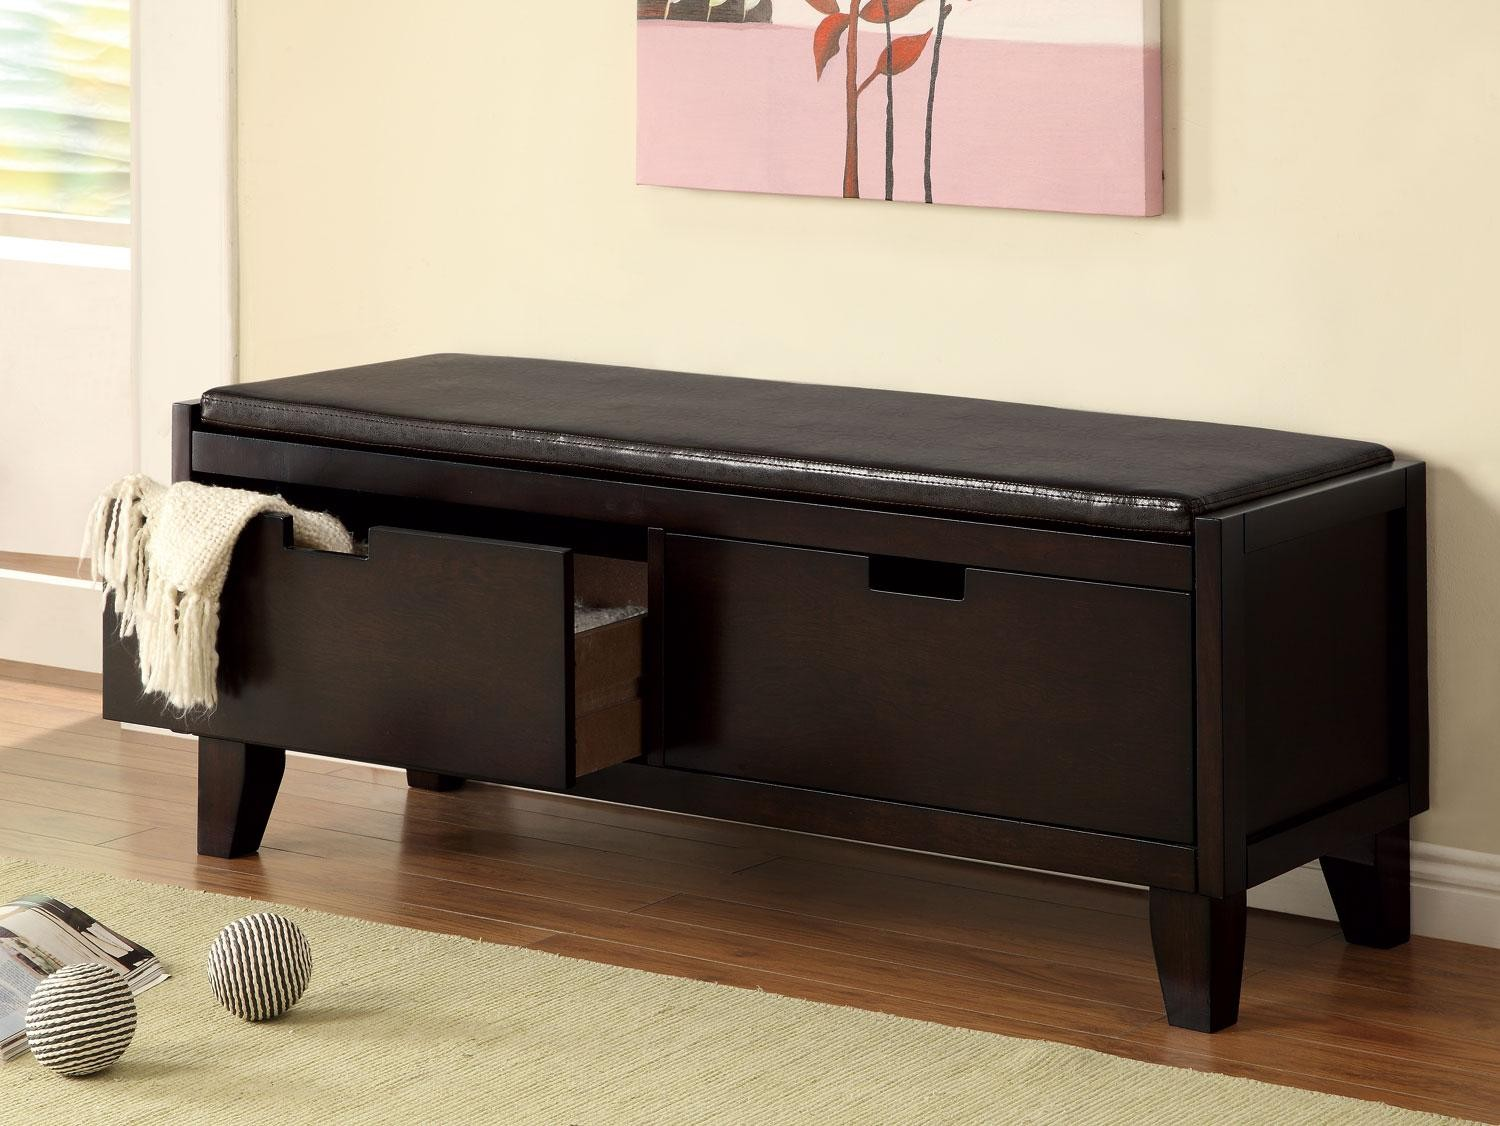 Dark Walnut Storage Bench With 2 Drawers From Coaster 508005 Coleman Furniture